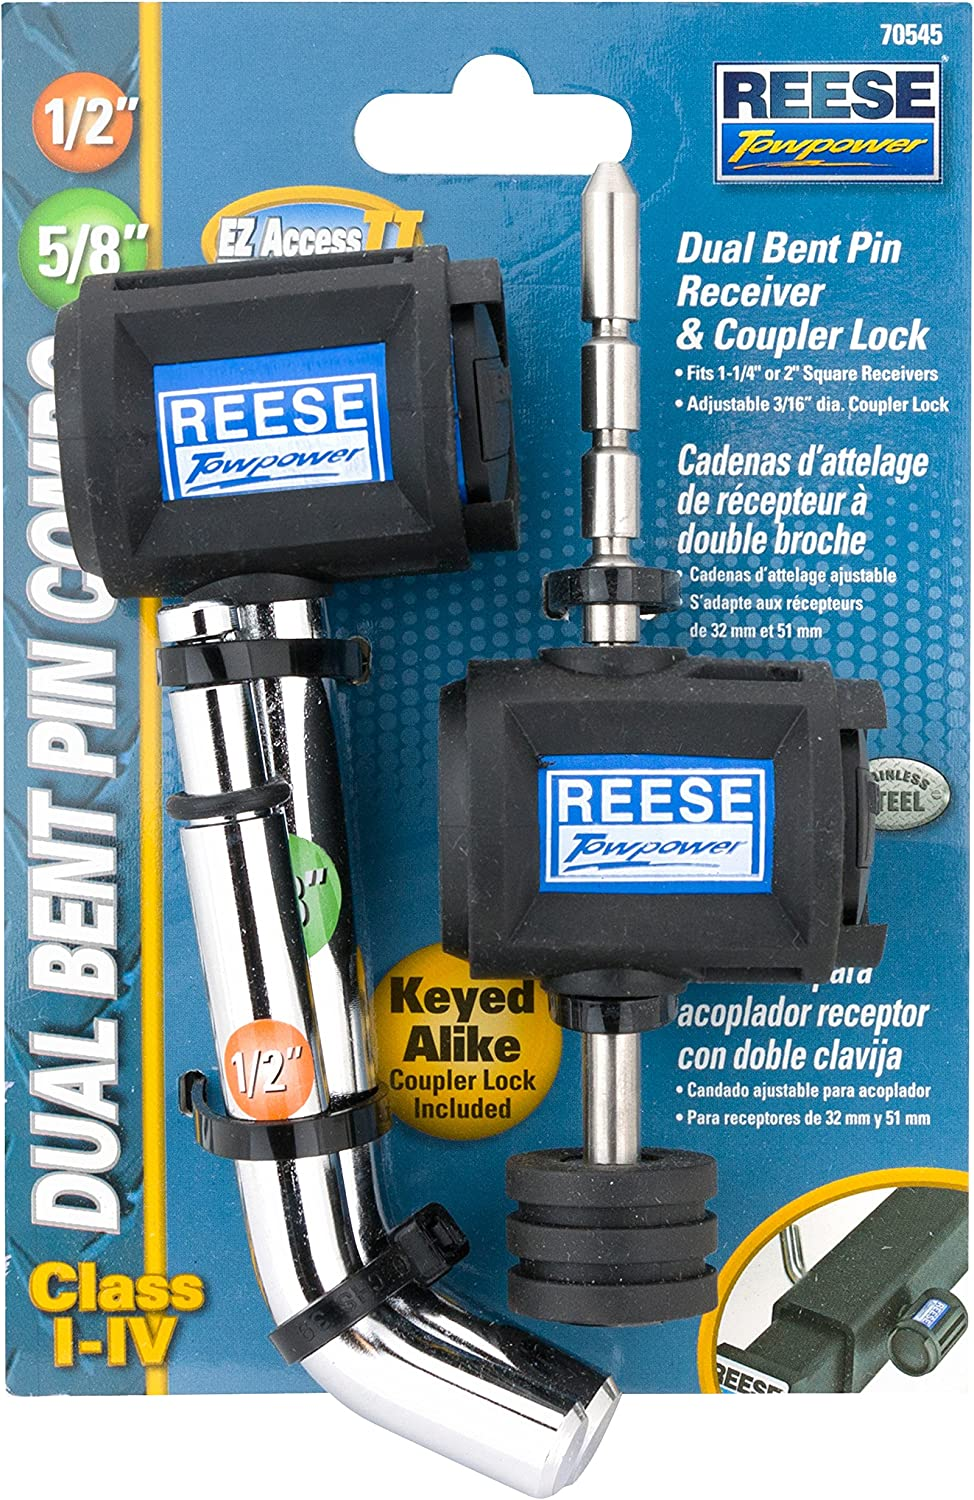 5//8 and 1//2 Reese Towpower 7054530 EZ Access II Stainless Steel Class I-IV Dual Bent Pin Receiver and Coupler Lock